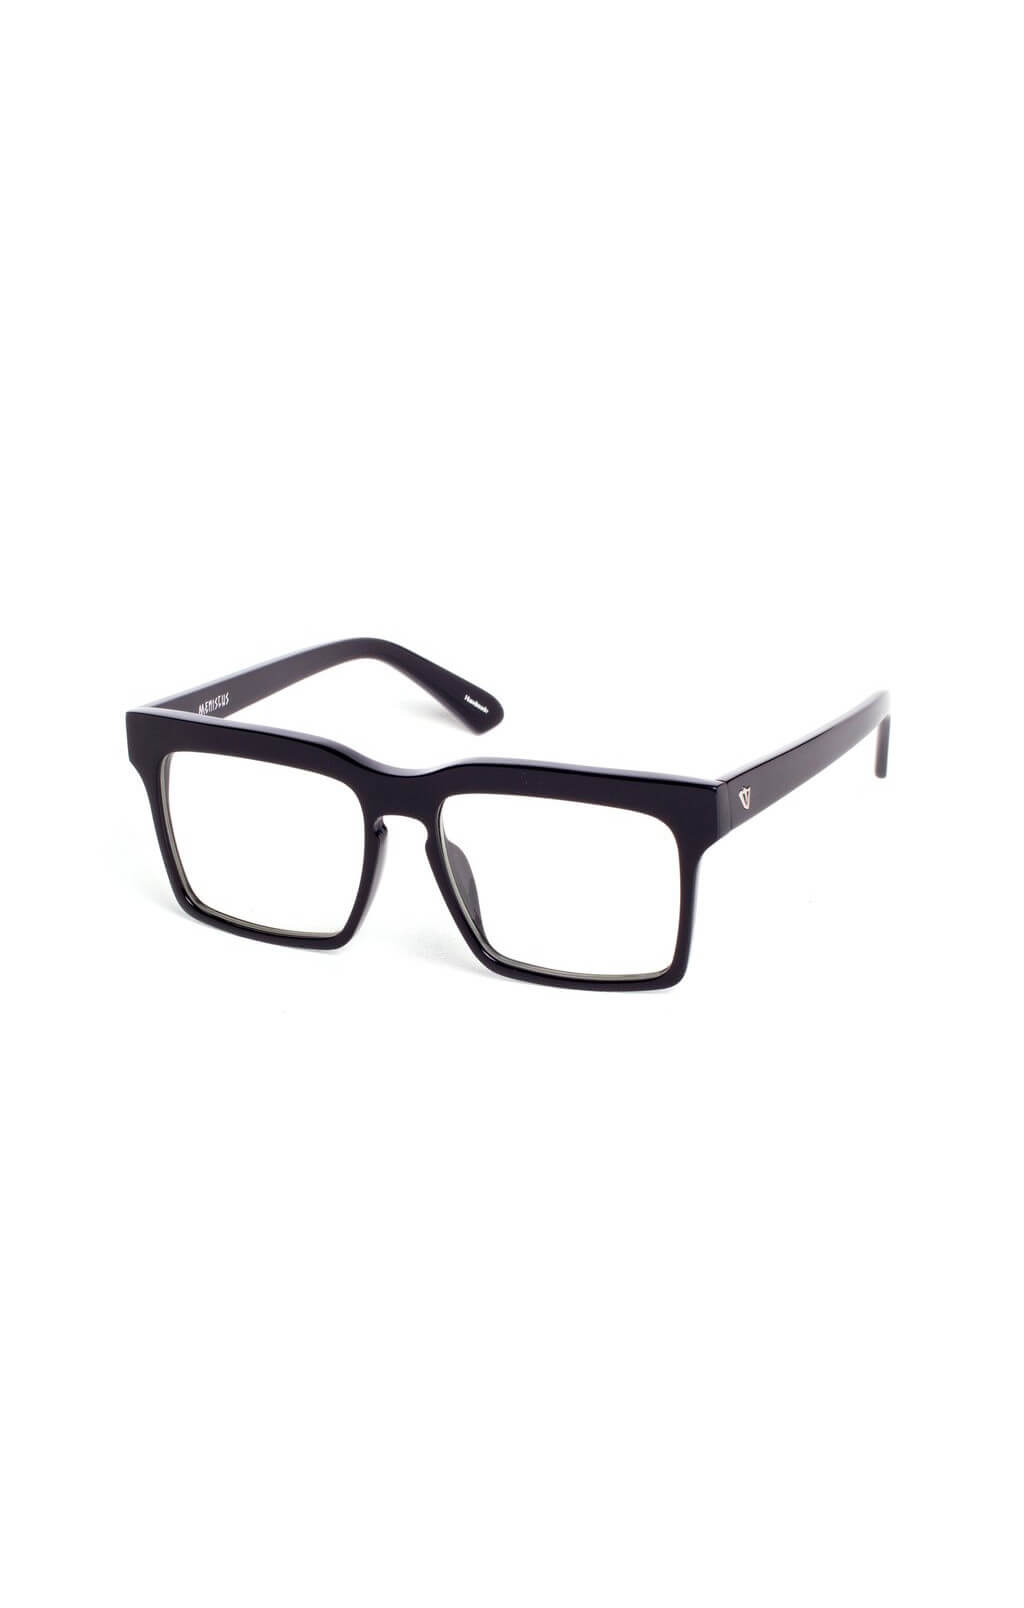 valley meniscus optical glasses gloss black